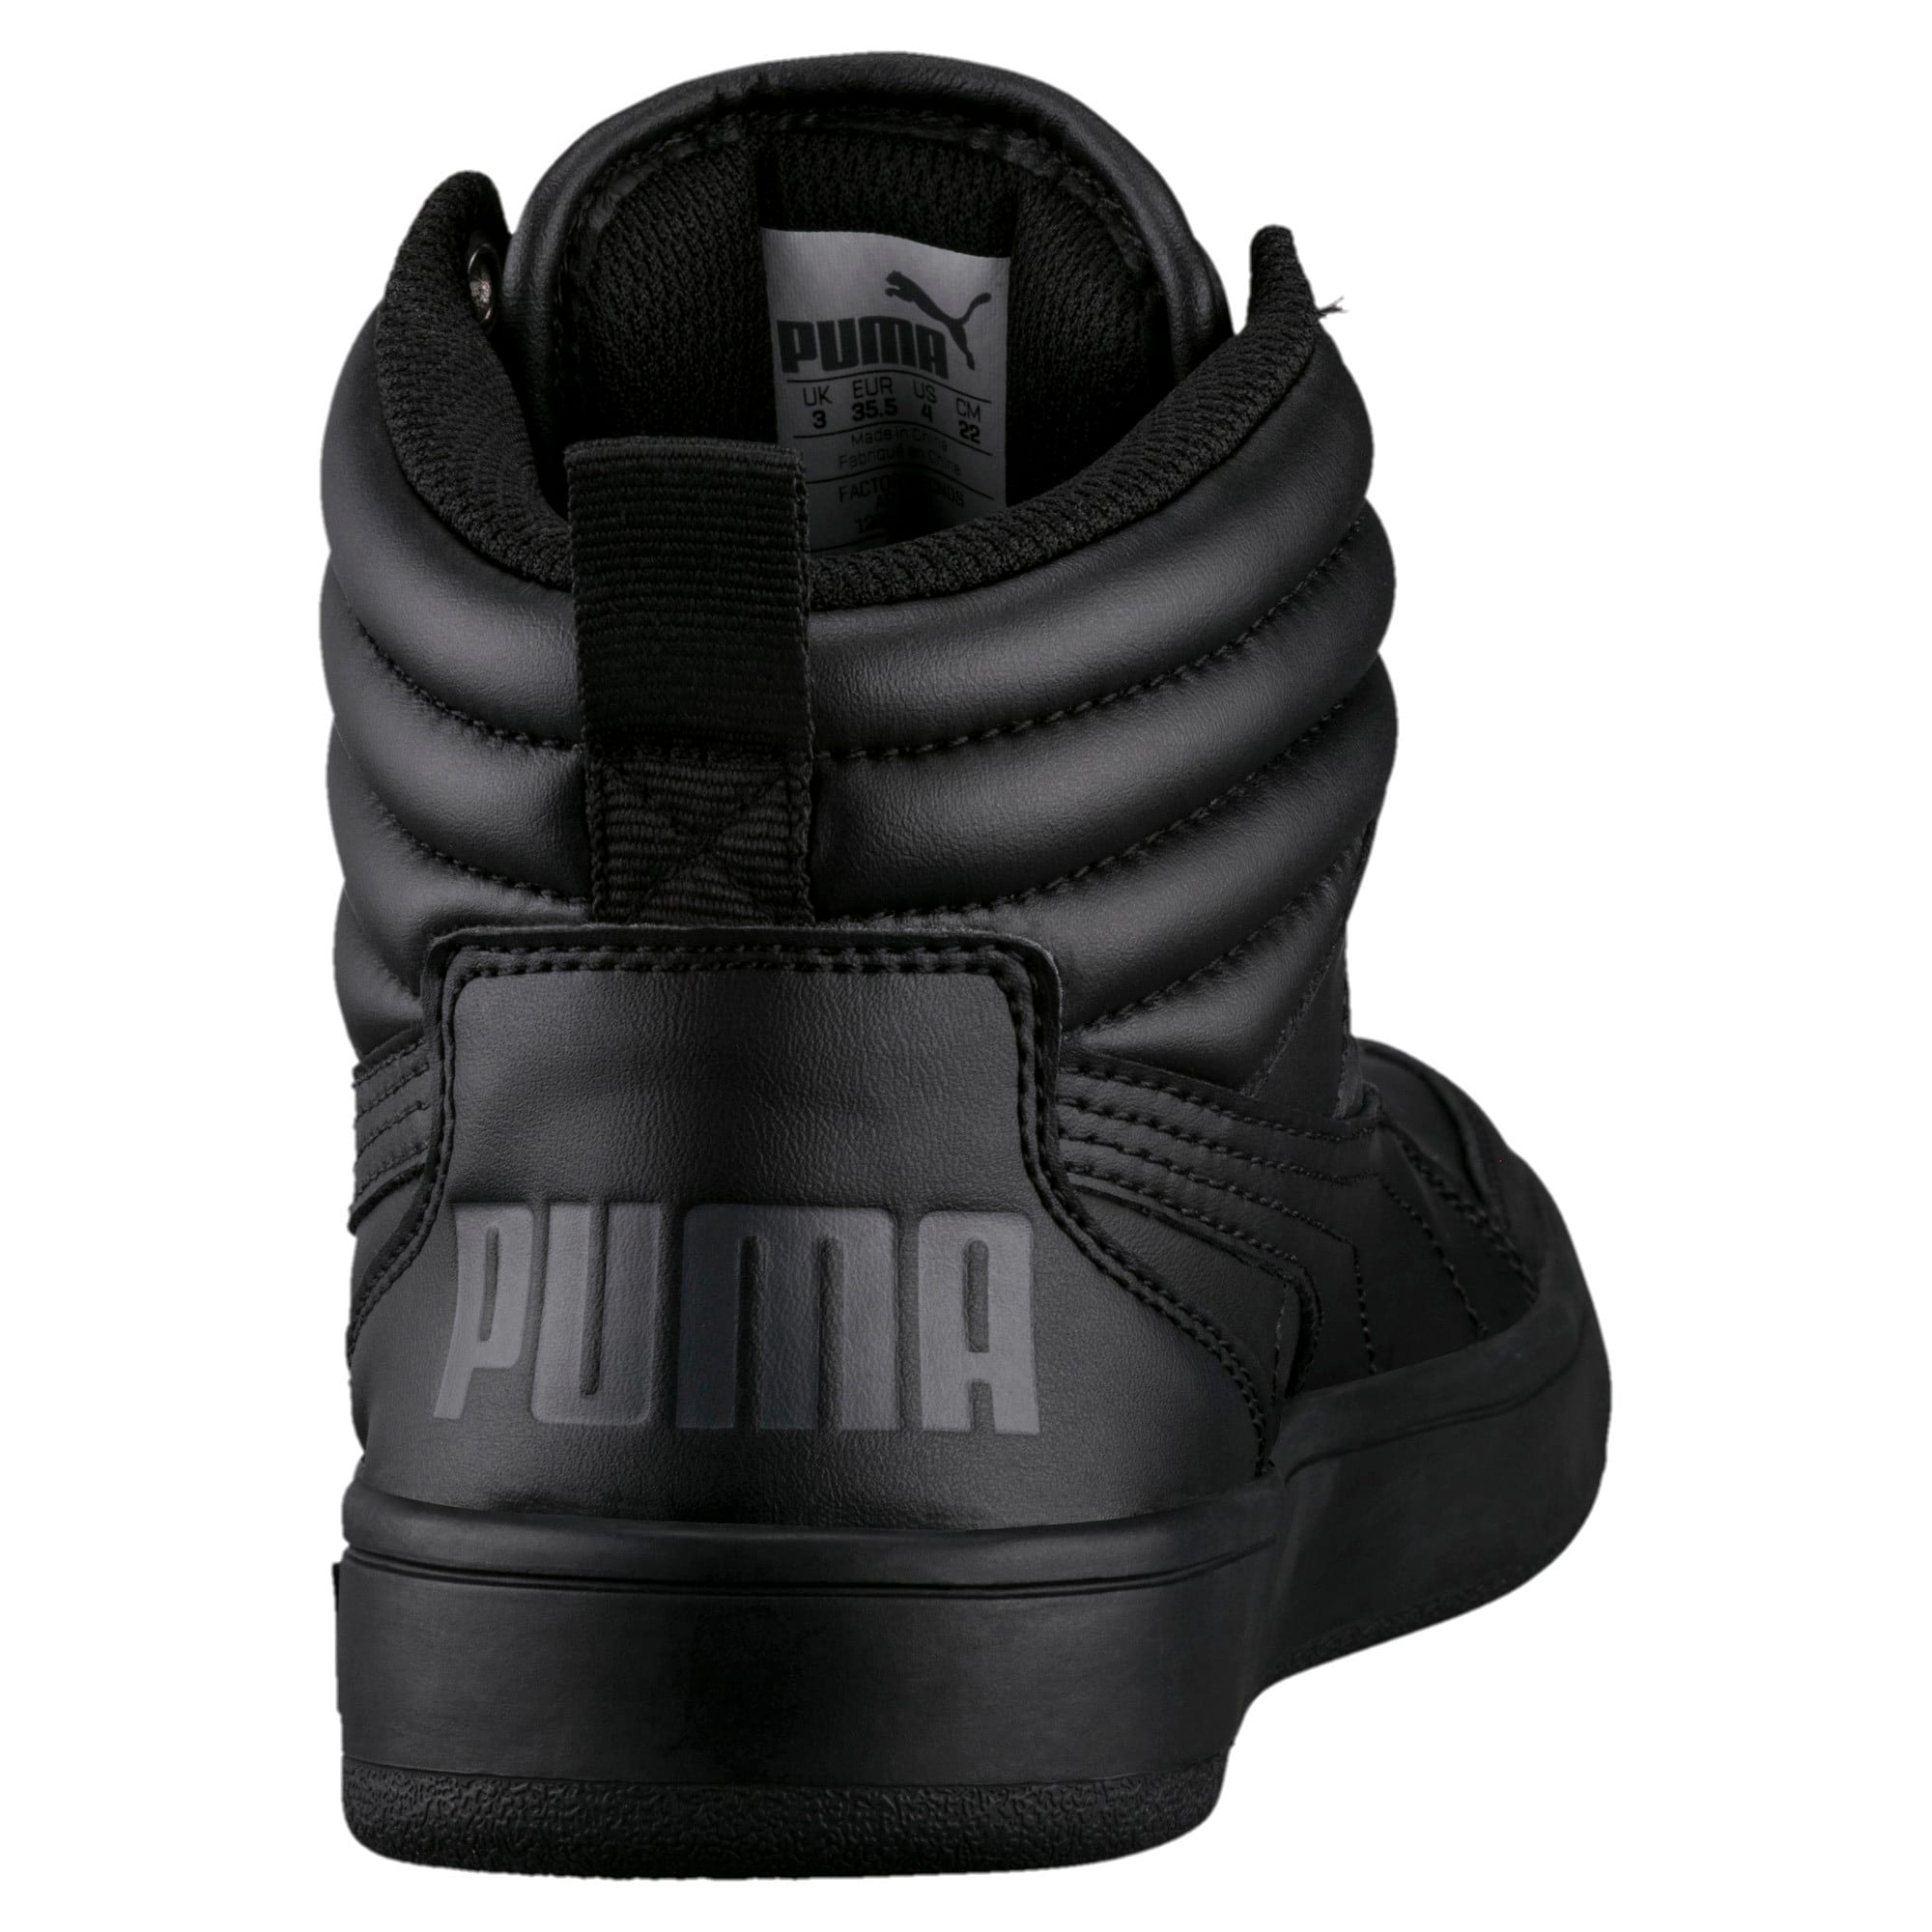 Thumbnail 2 of Rebound Street v2 Leather Kids' High Tops, Puma Black-Puma Black, medium-IND